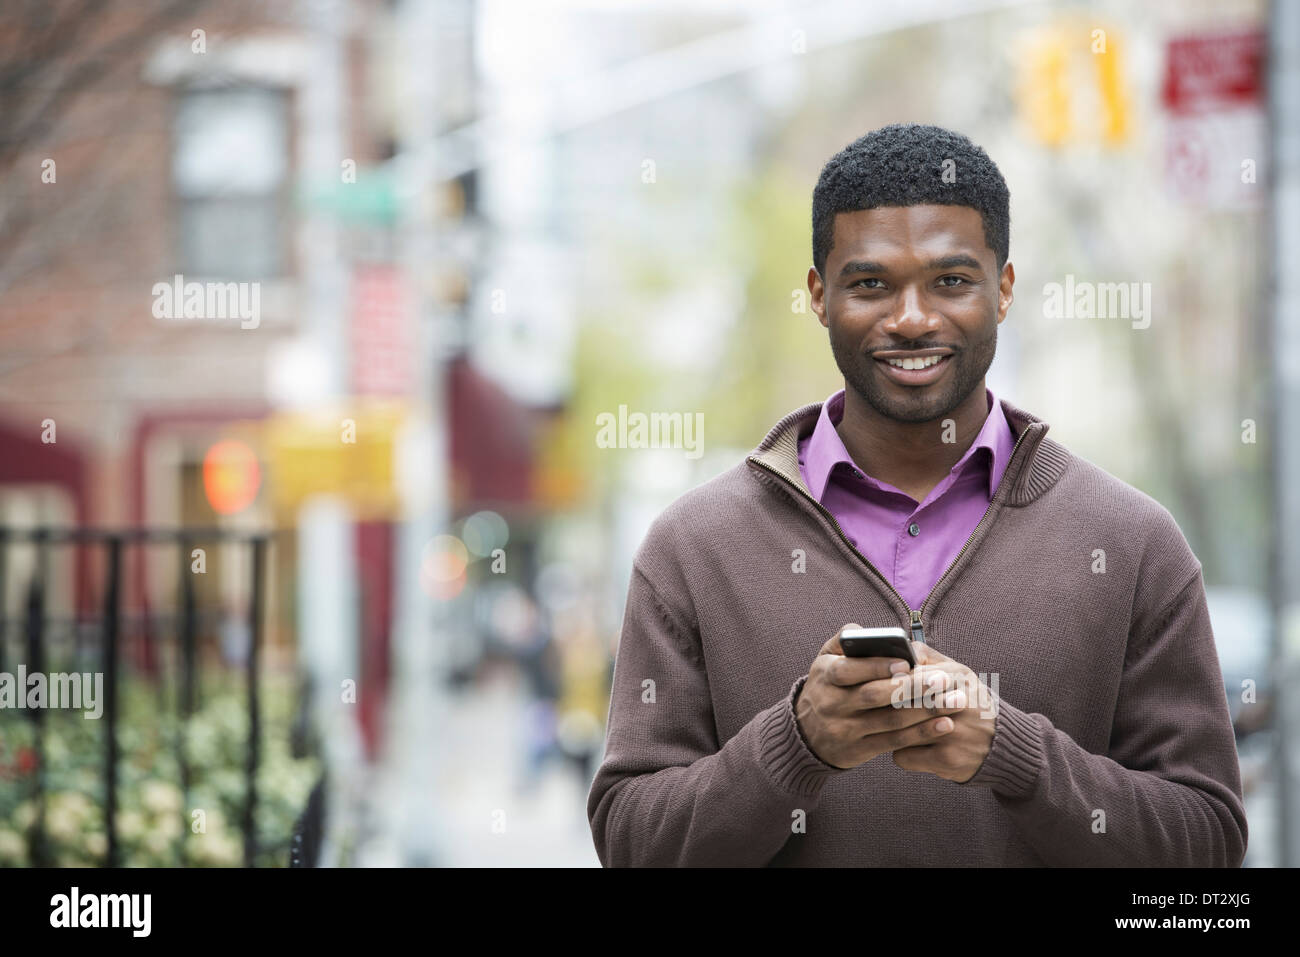 A young man holding his phone and smiling at the camera - Stock Image